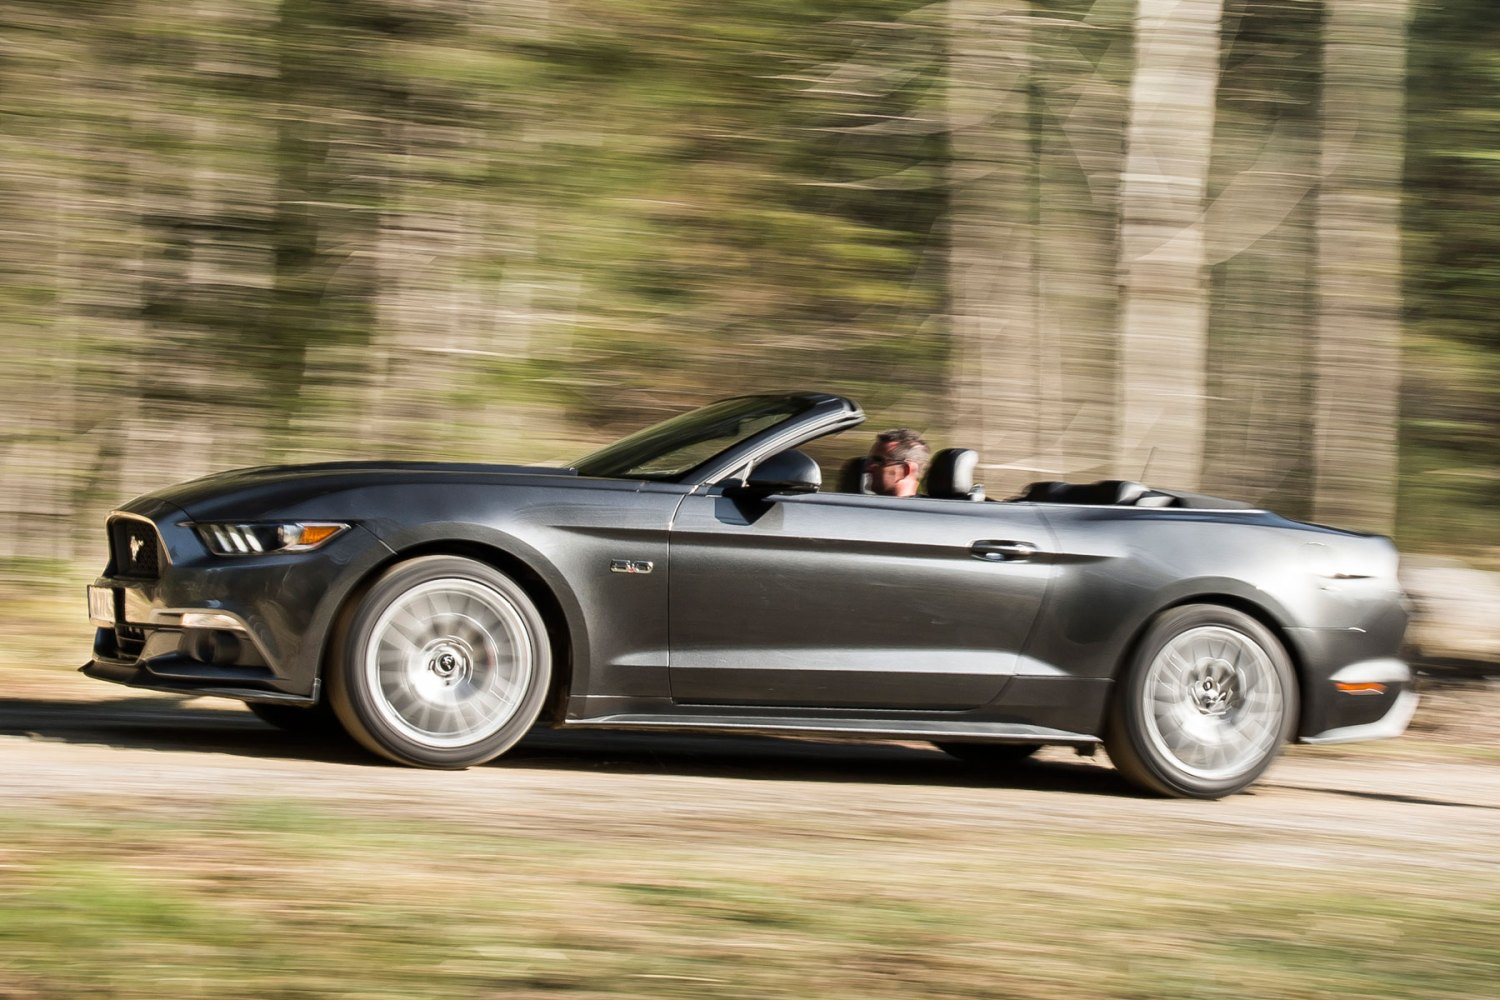 What's the Ford Mustang like to drive?